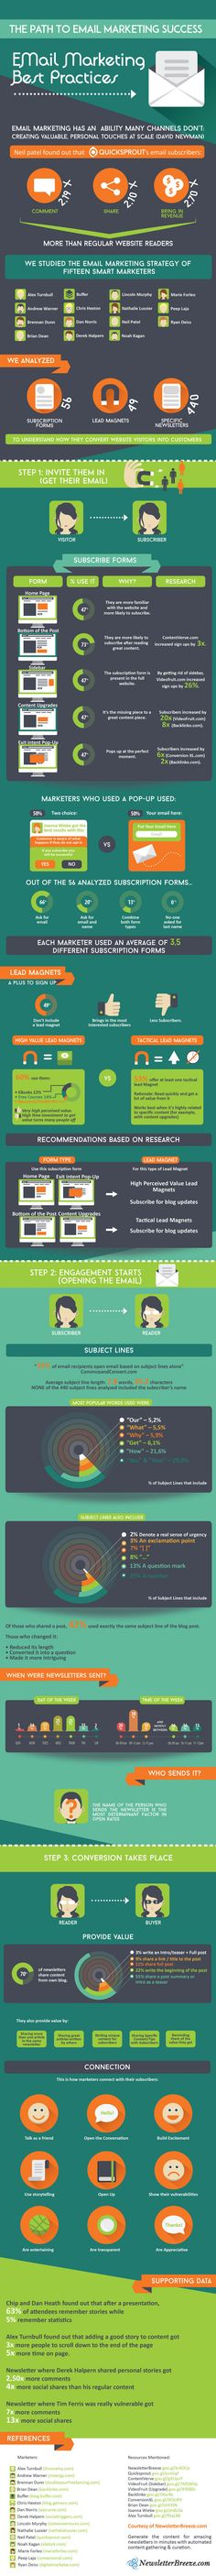 13 Great Email Marketing Tips from the Pros